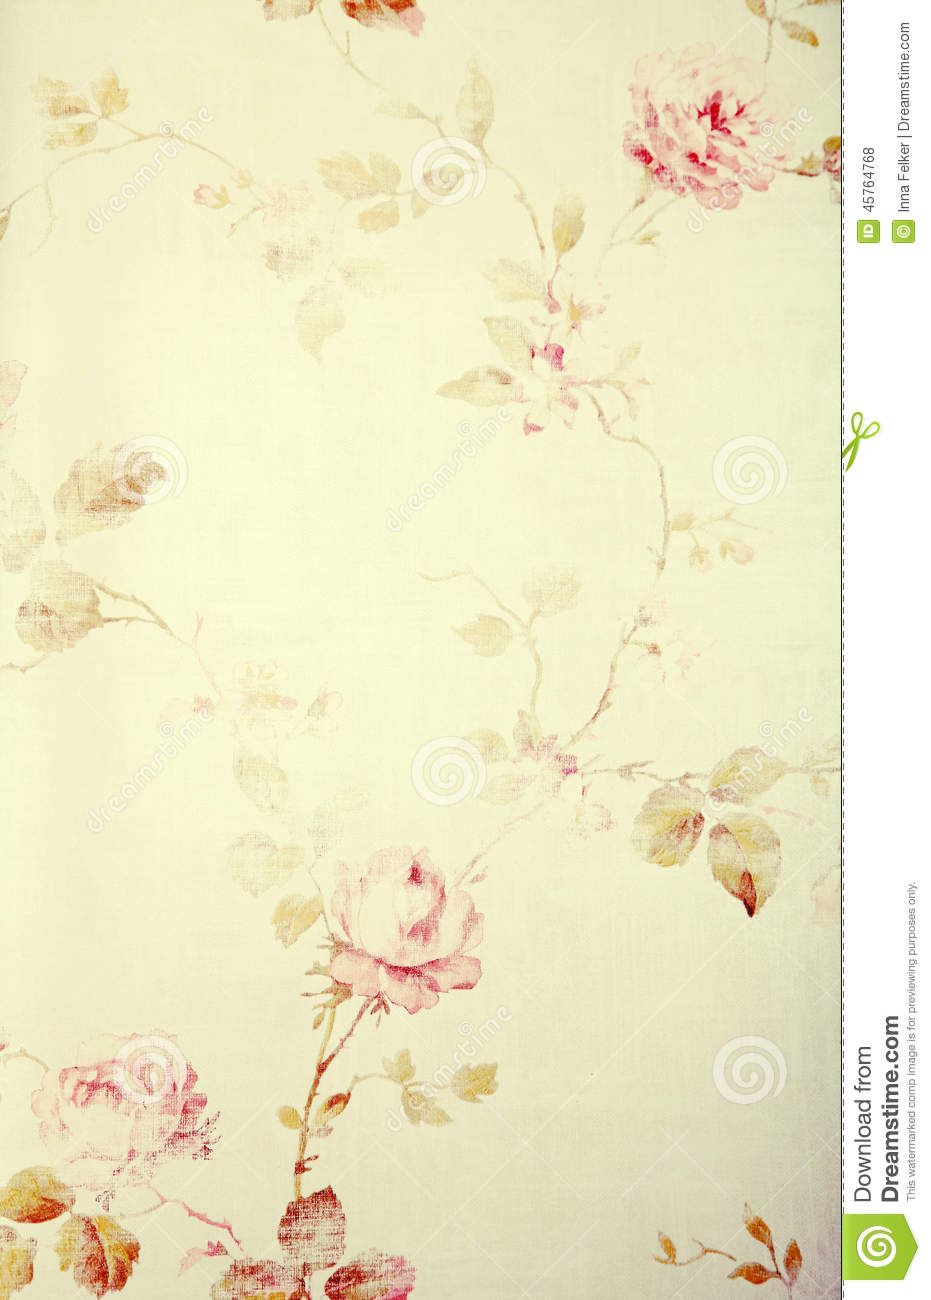 Vintage Victorian Wallpaper With Floral Pattern Stock ...